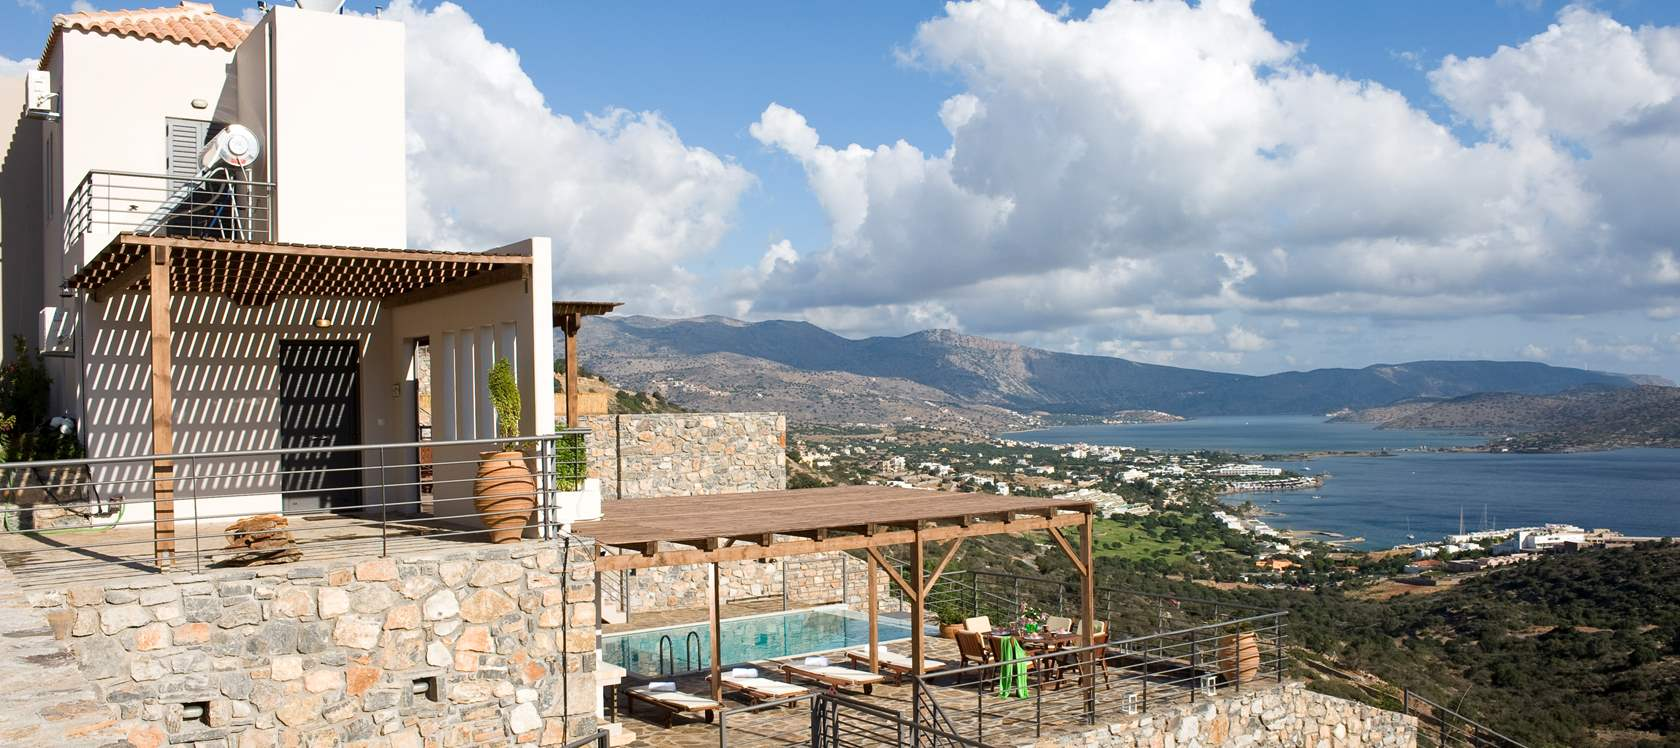 Panoramic view of Mirabello Bay from the villas